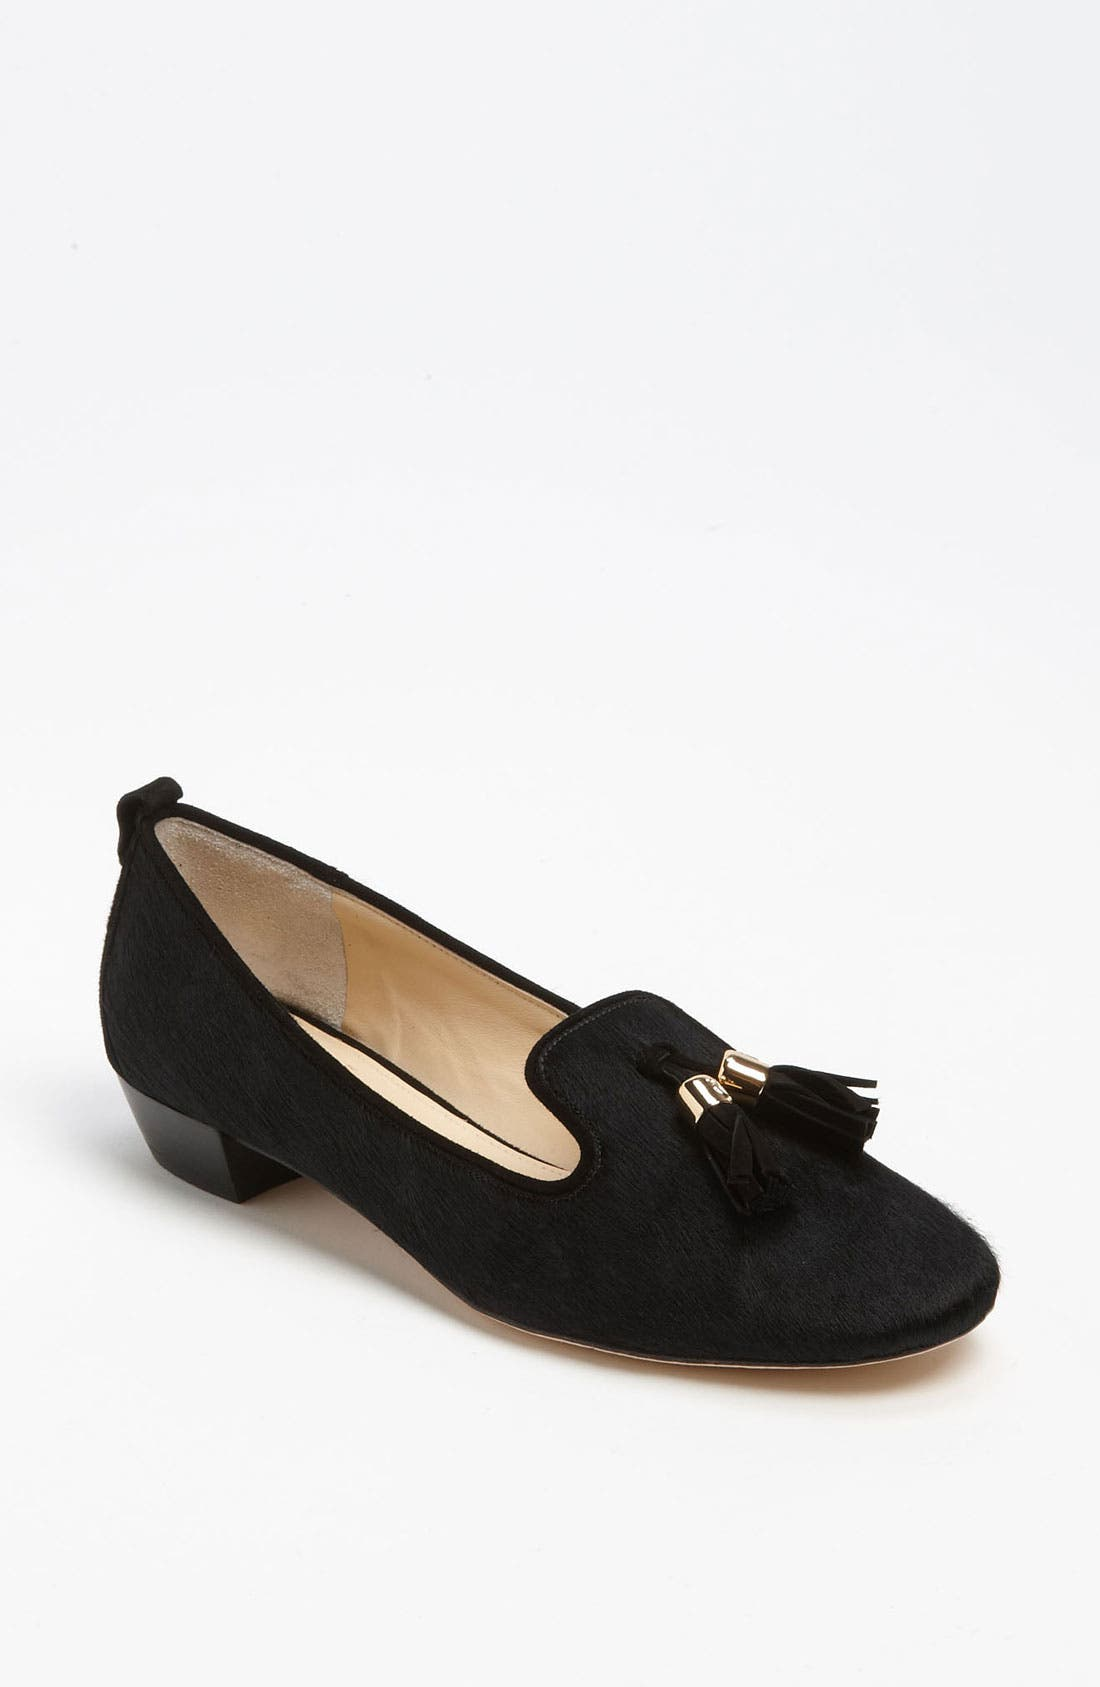 'Nancy' Loafer,                         Main,                         color, 001